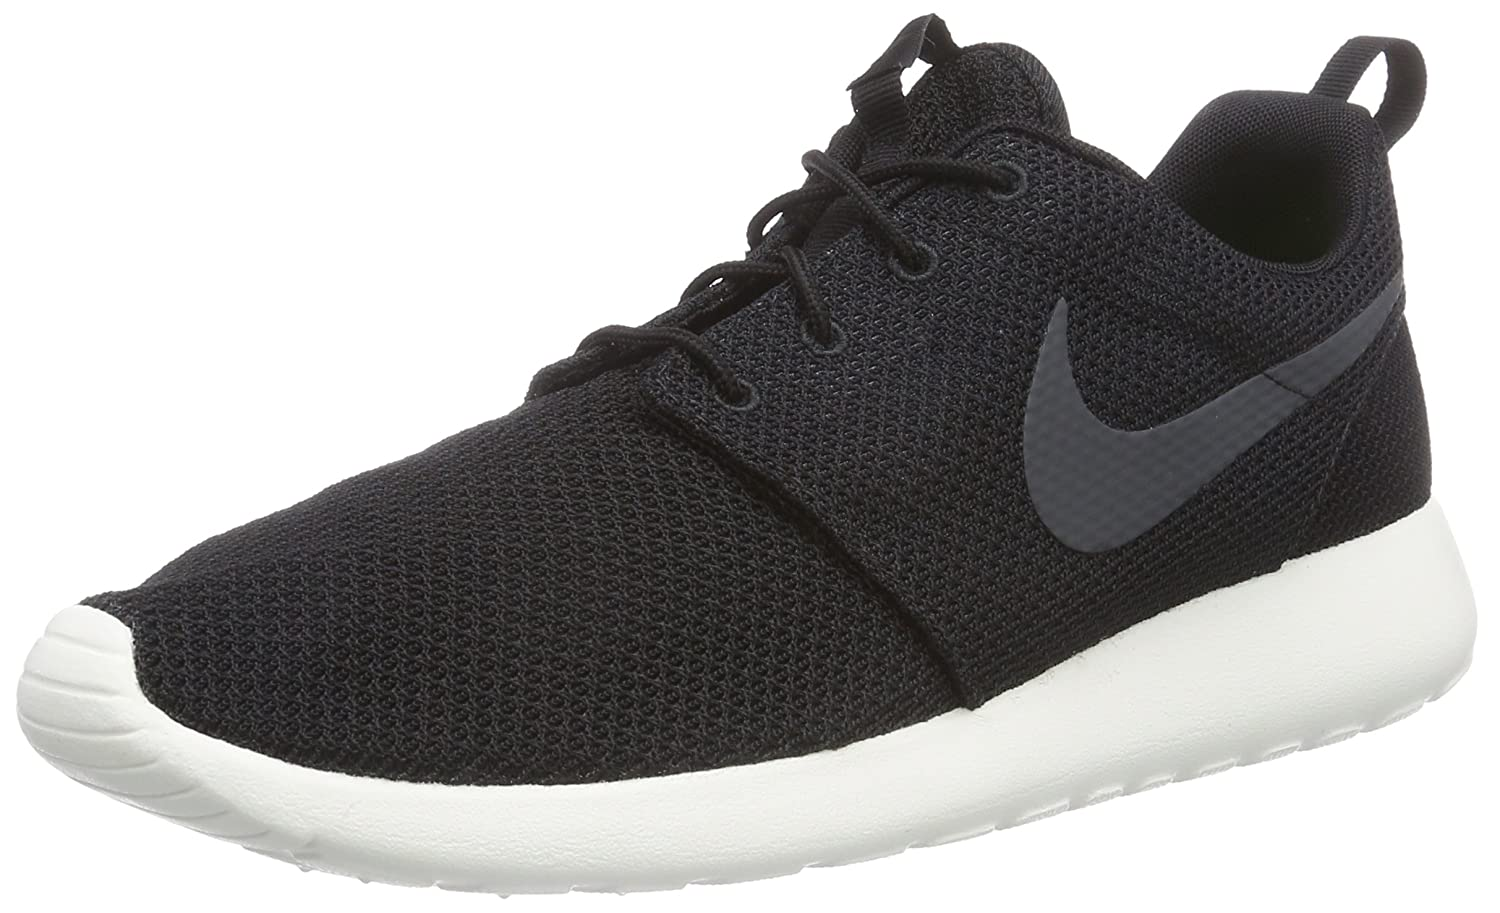 bsqiug NIKE Nike Rosherun Mens Running Shoes: Amazon.co.uk: Shoes & Bags